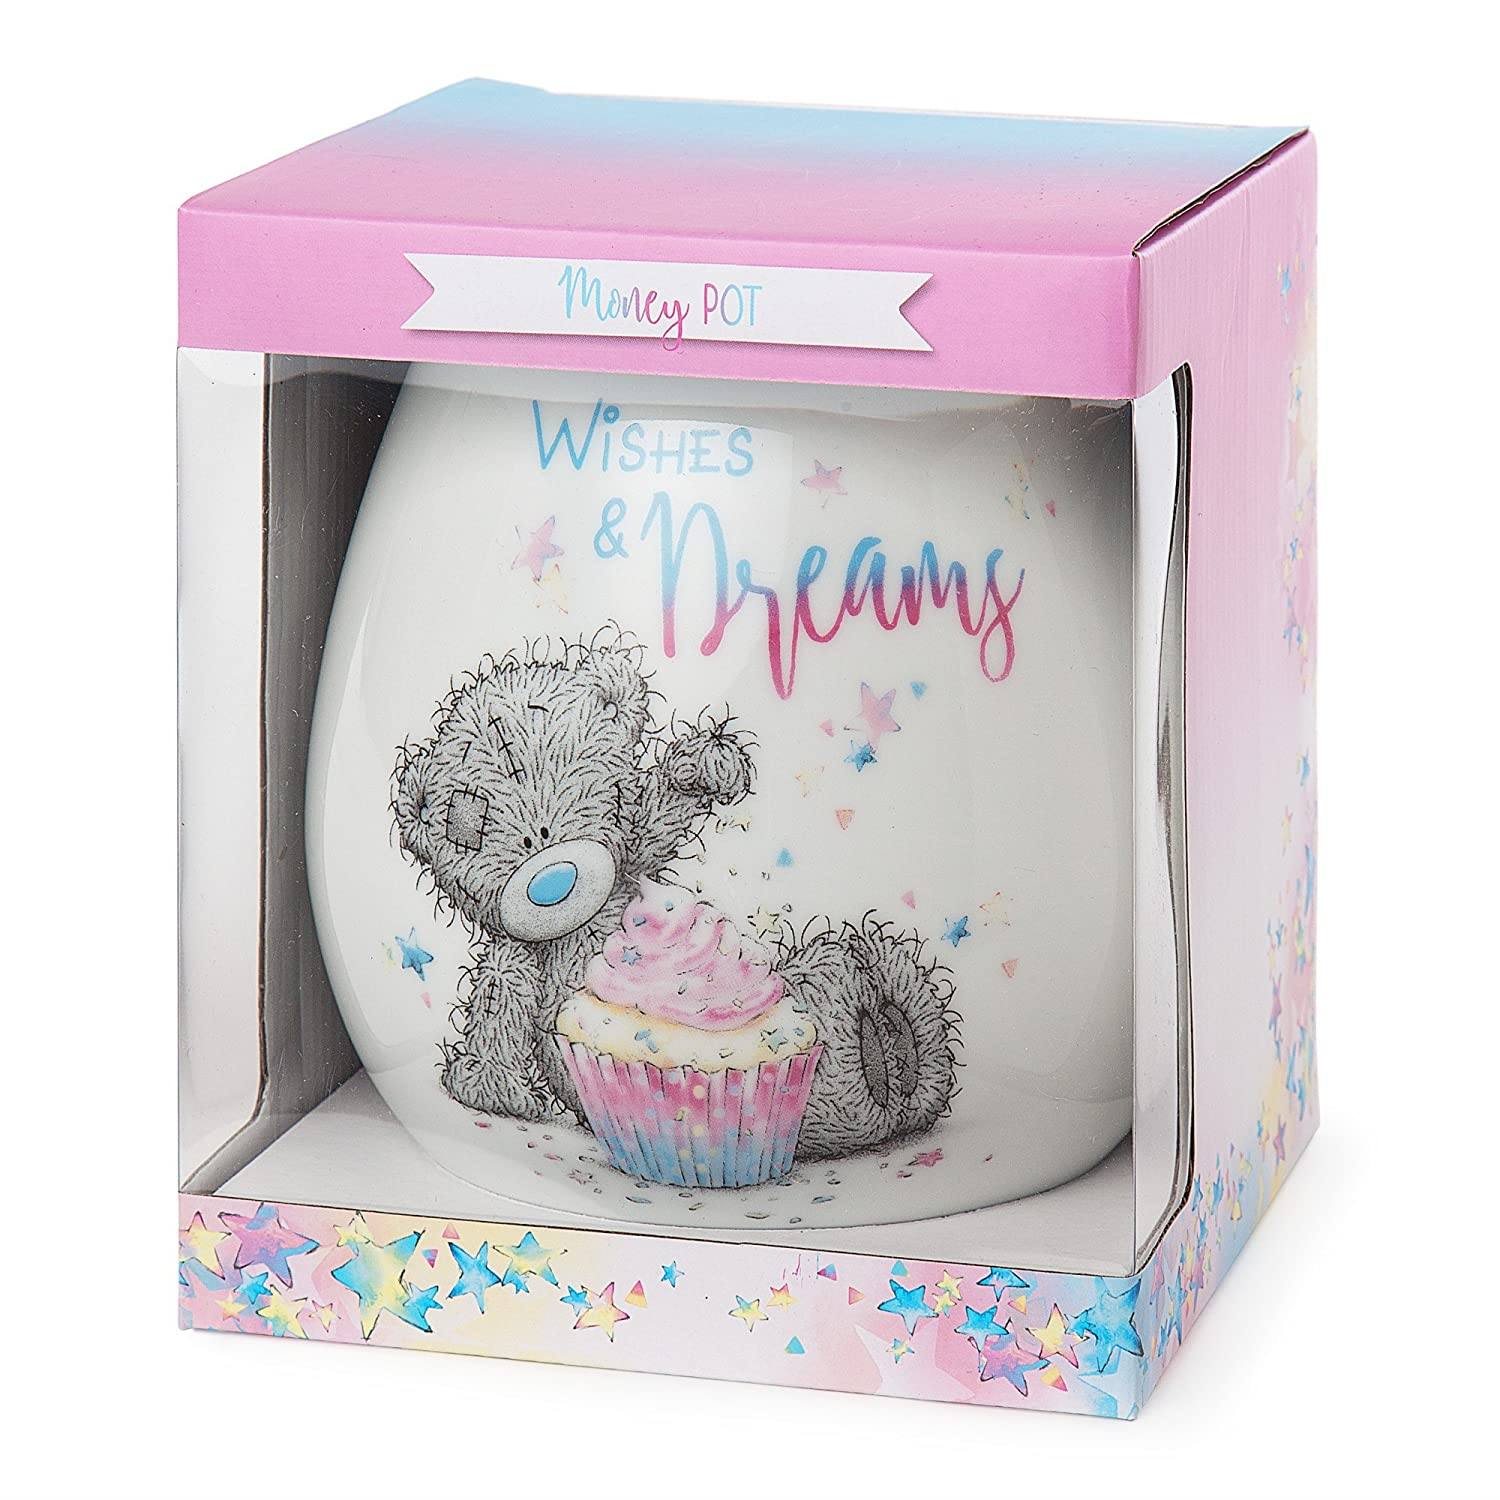 Me to you wishes and dreams moneybox carte blanche greetings ltd box contains 1 x moneybox me to you wishes and dreams moneybox carte blanche greetings ltd agx01004 m4hsunfo